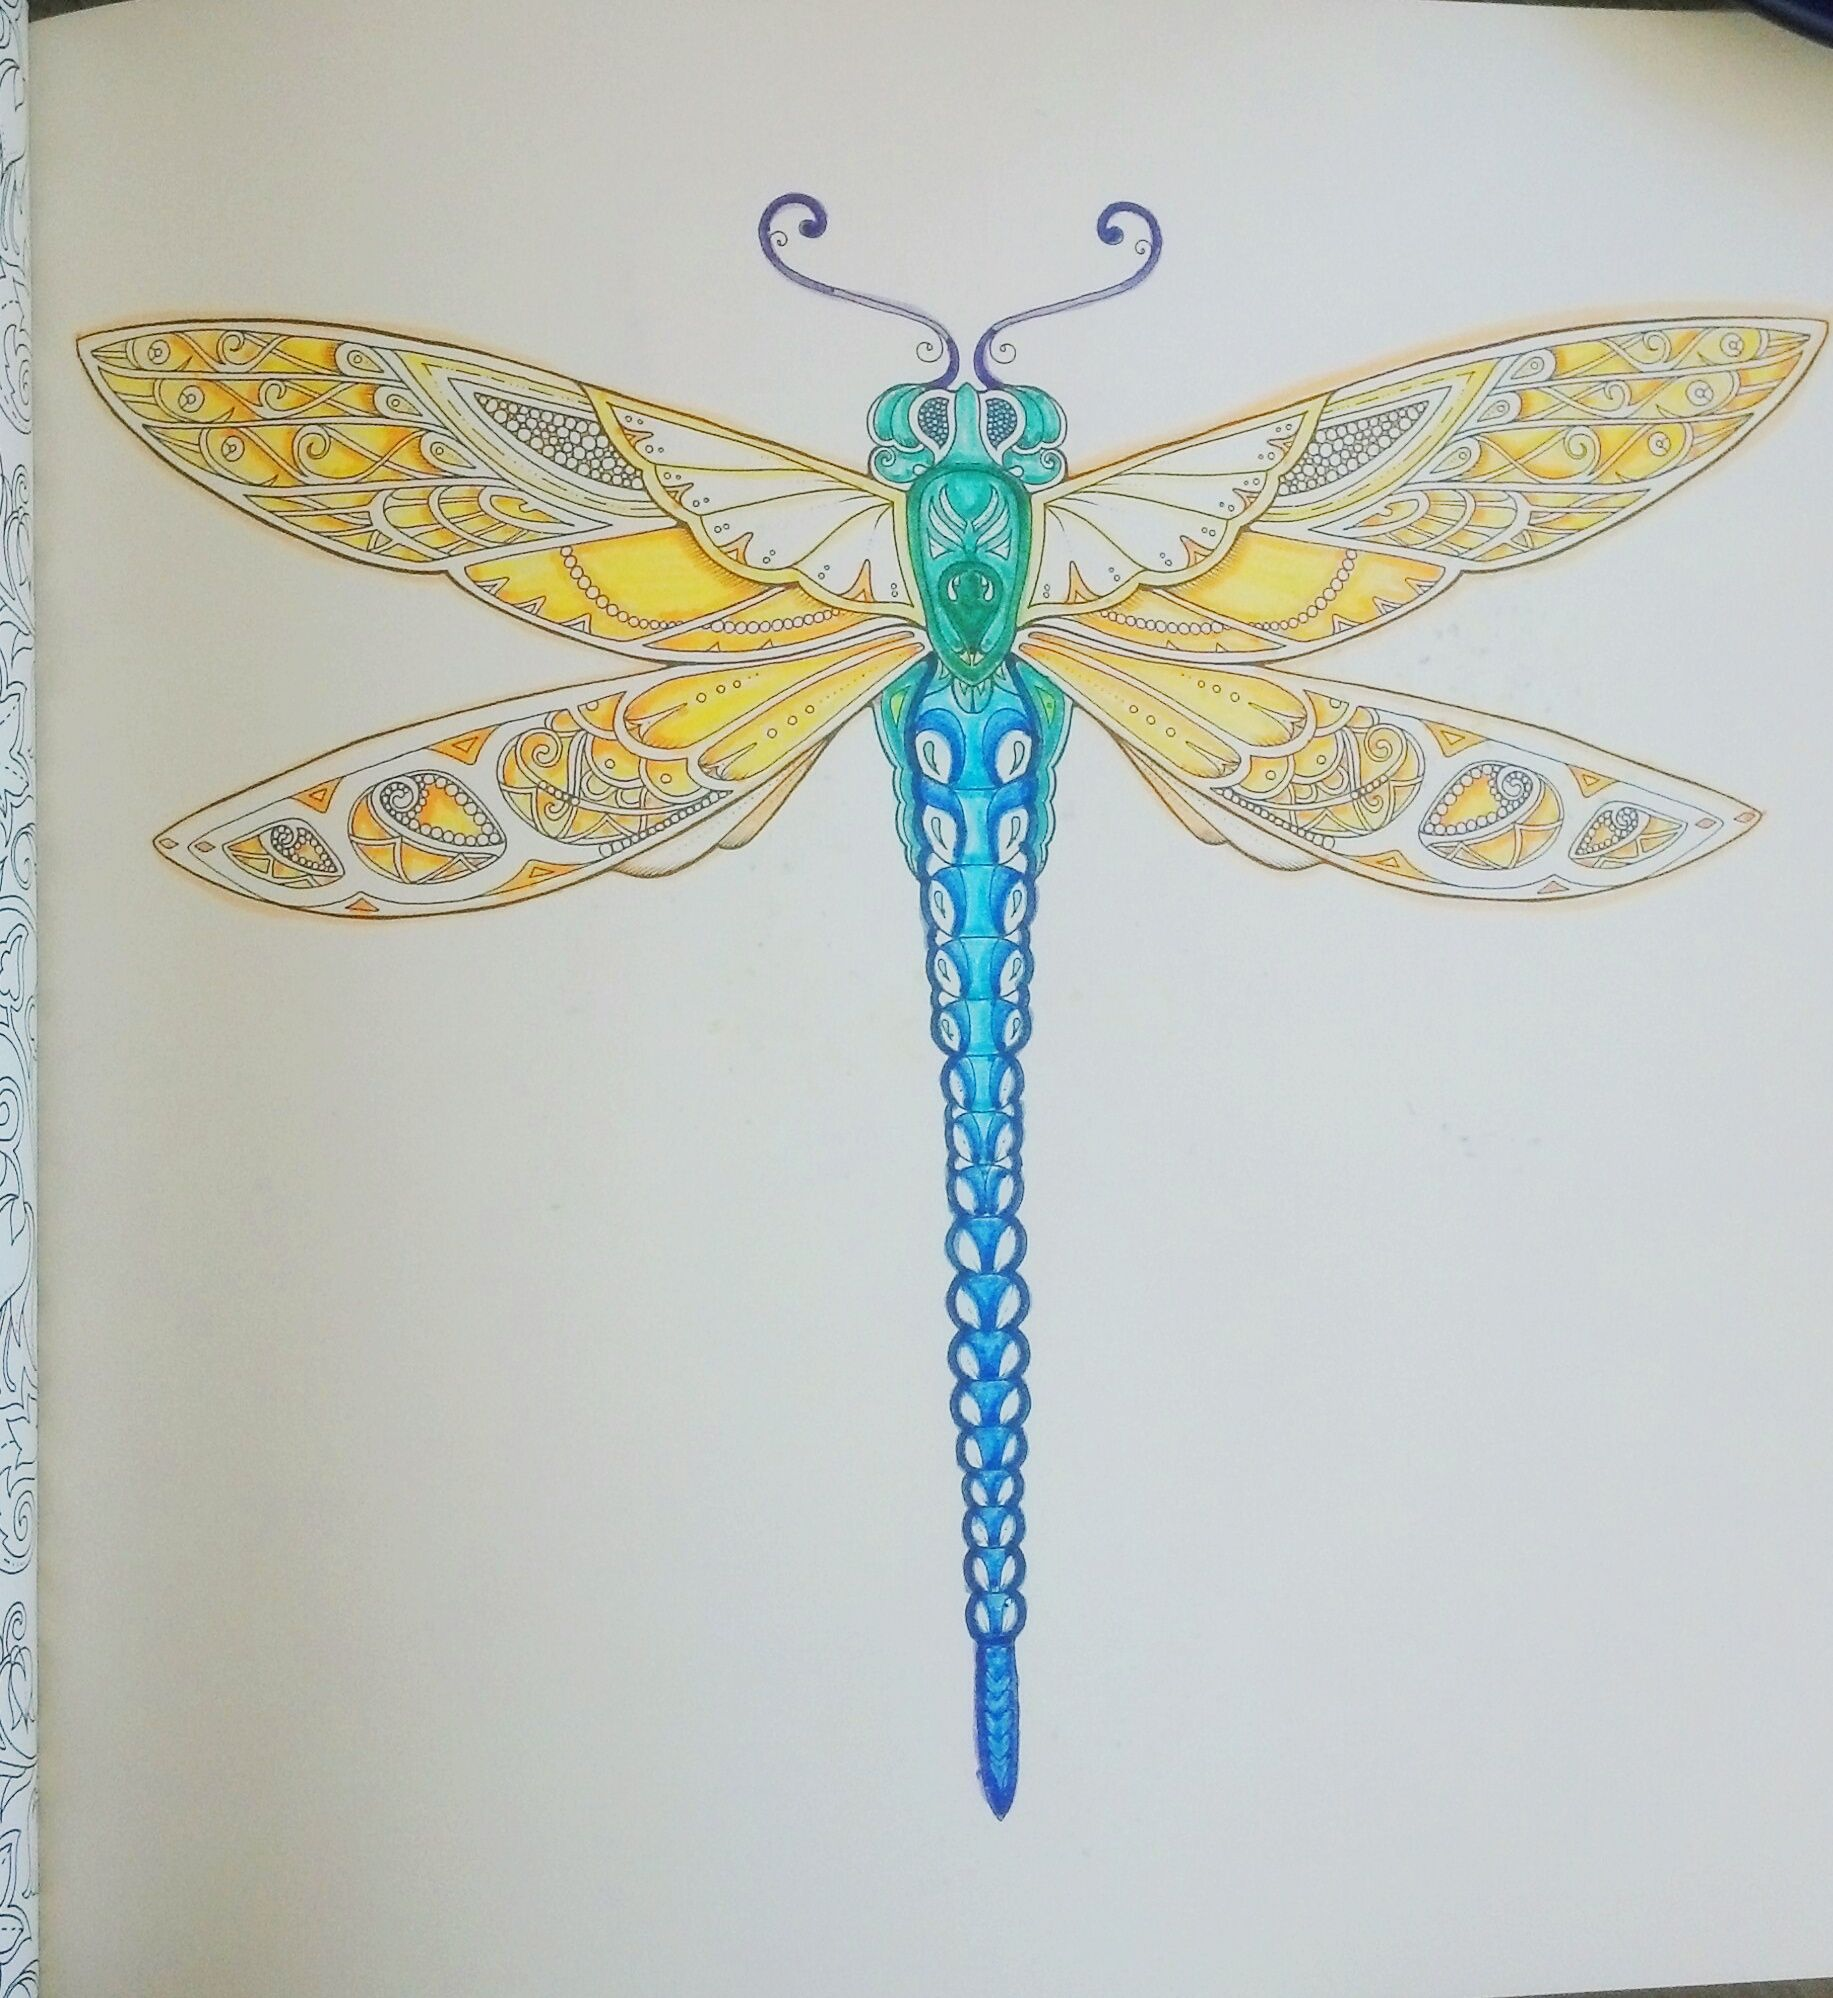 Adult Coloring Books This Is From Johanna Basfords Enchanted Forest I Just Use Basic